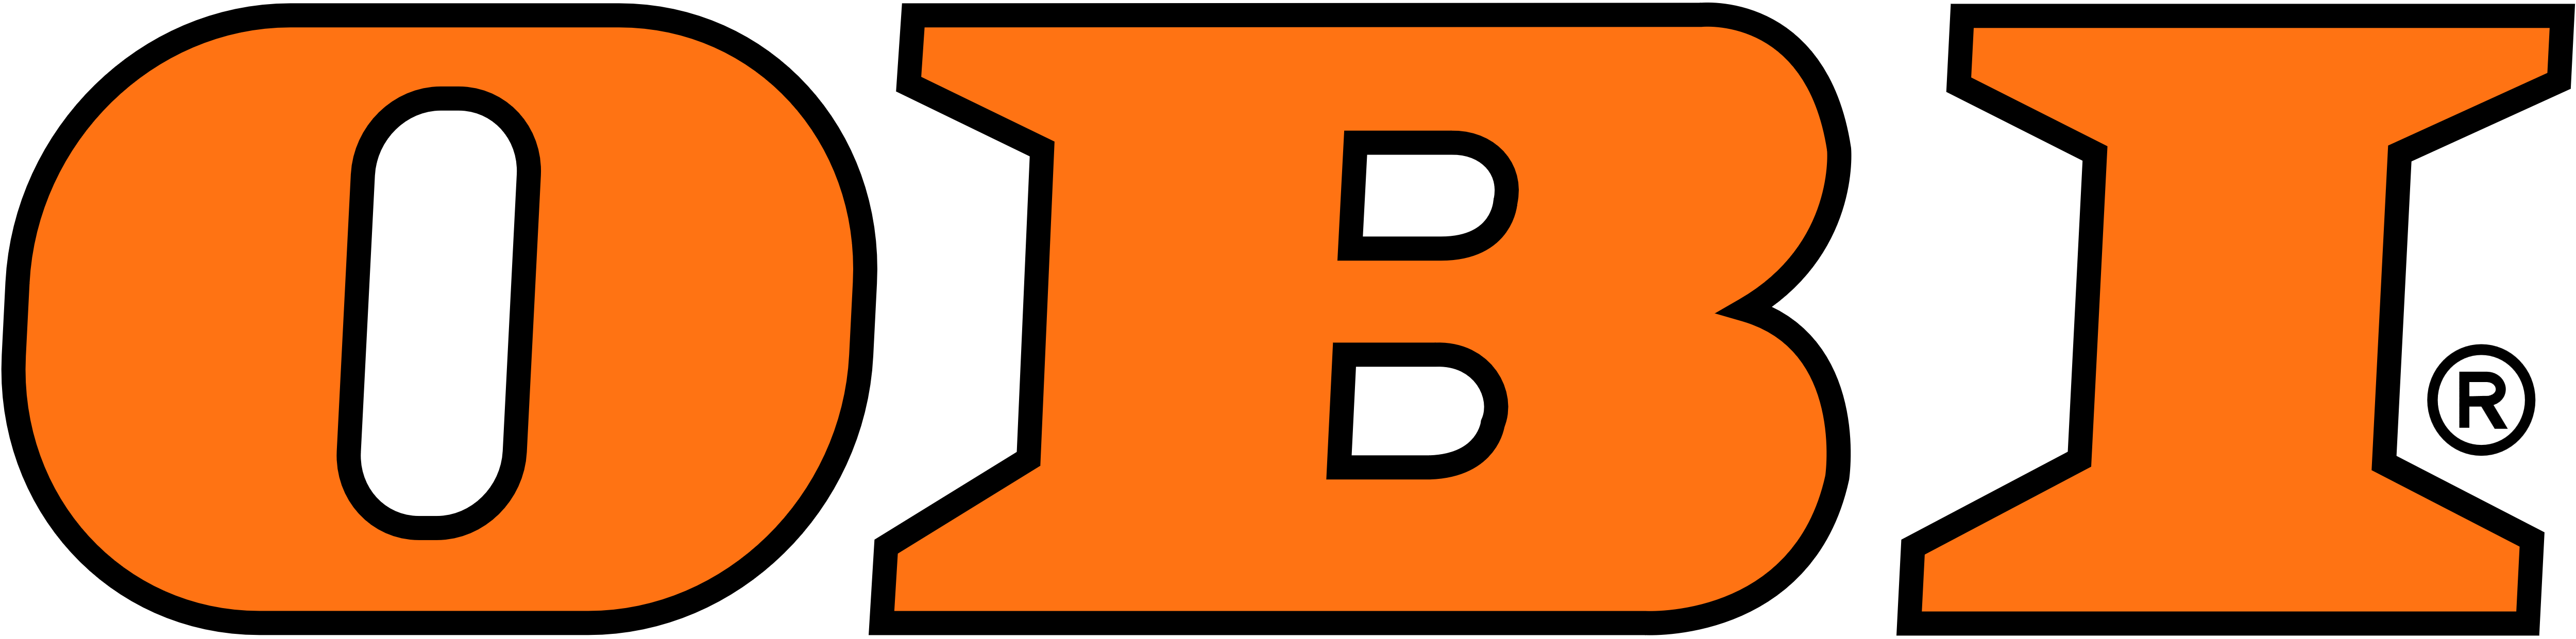 obi logos download orange victoriei orange victory